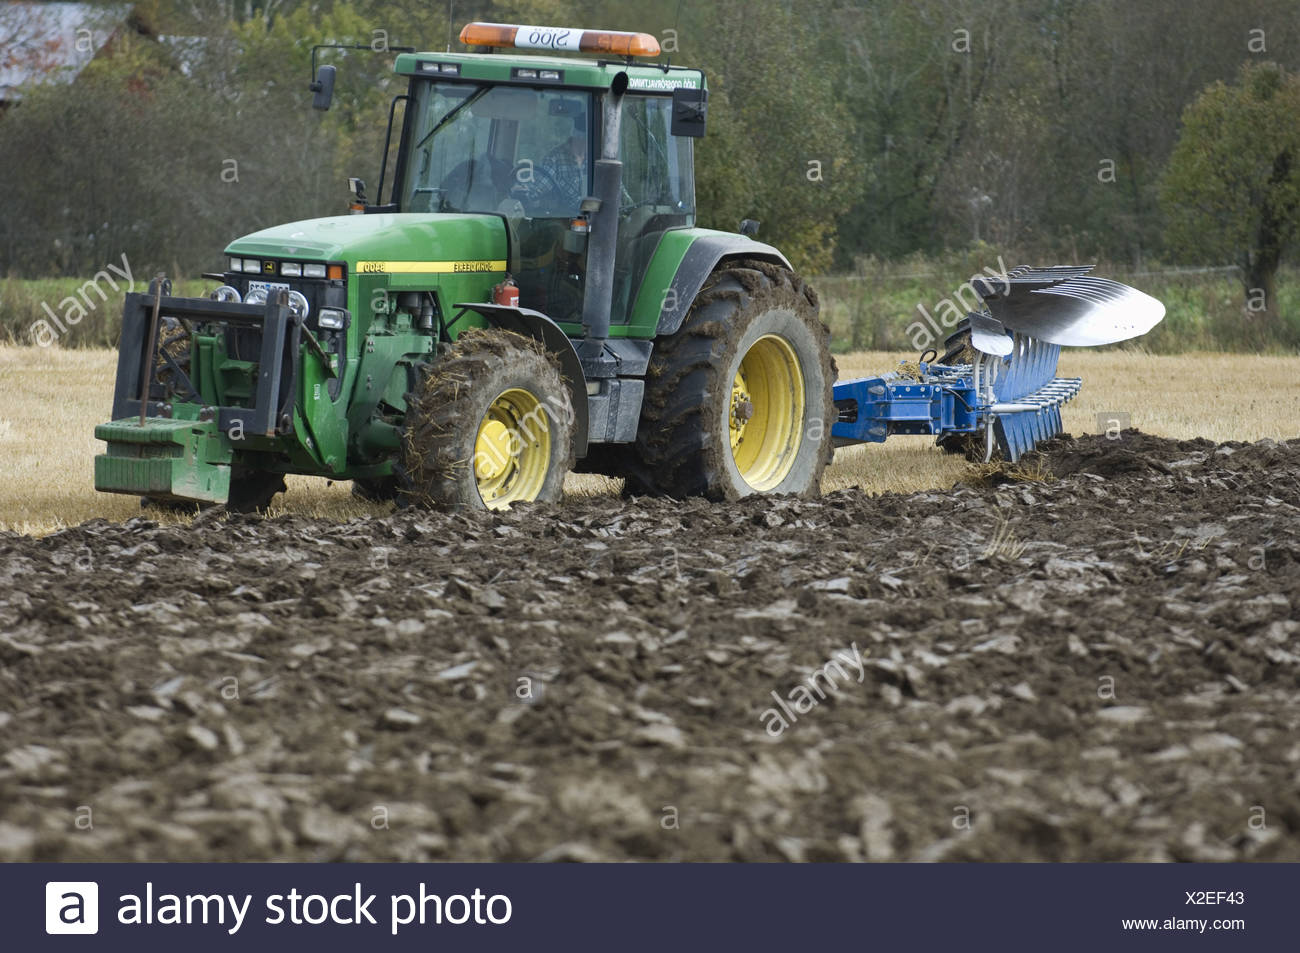 John Deere 8400 tractor pulling eight furrow reversible plough, ploughing stubble field, Sweden, autumn - Stock Image